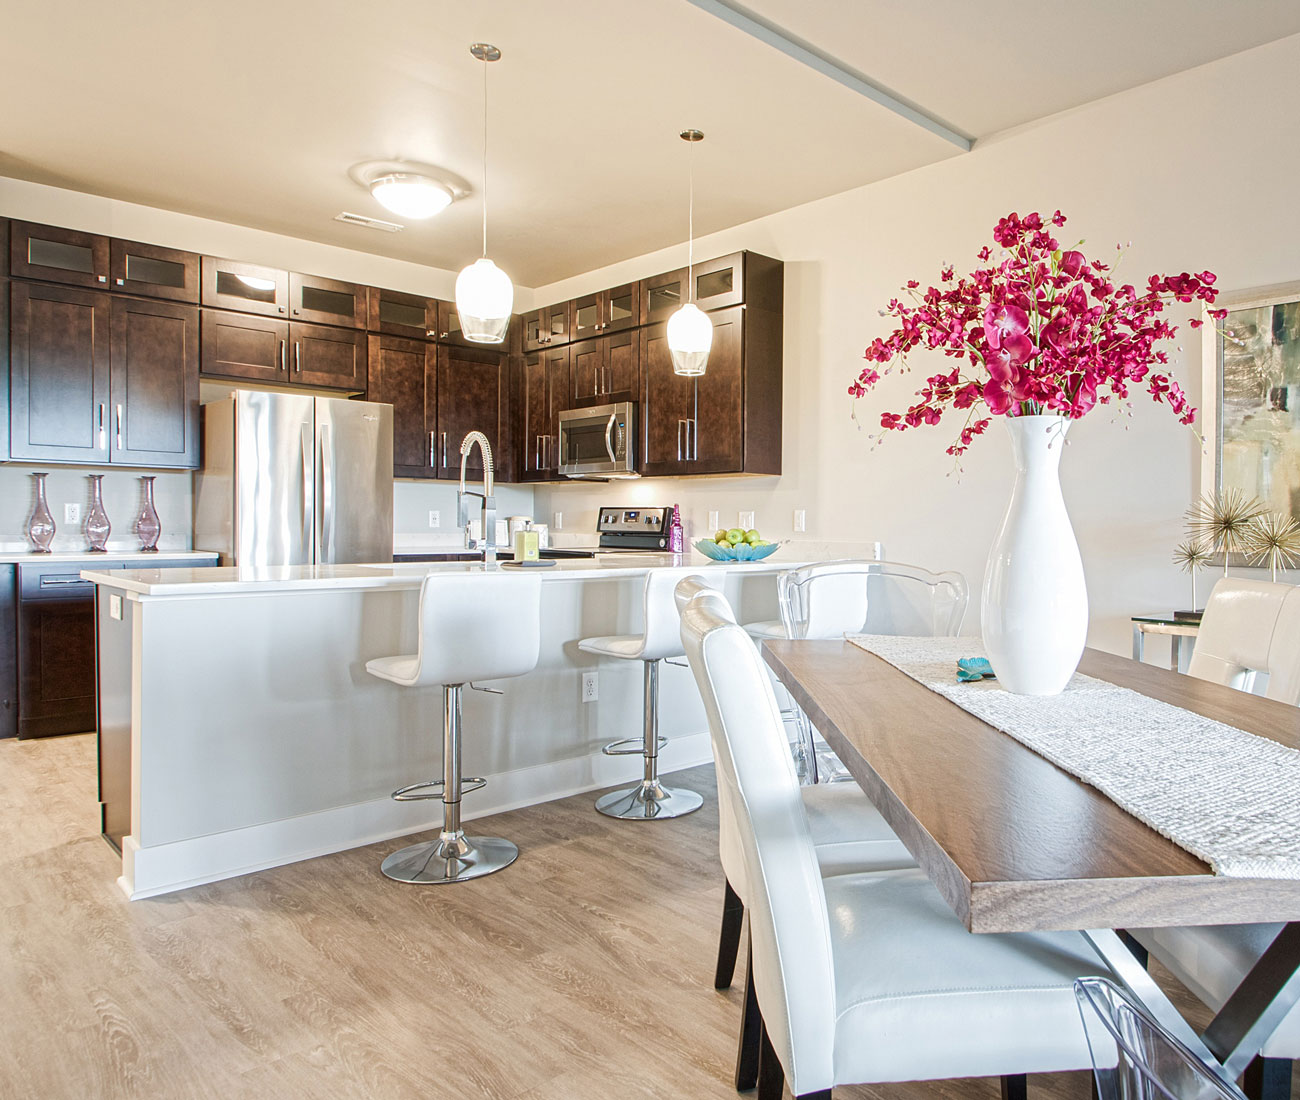 Shorewood Apartments: Apartments For Rent In Shorewood WI